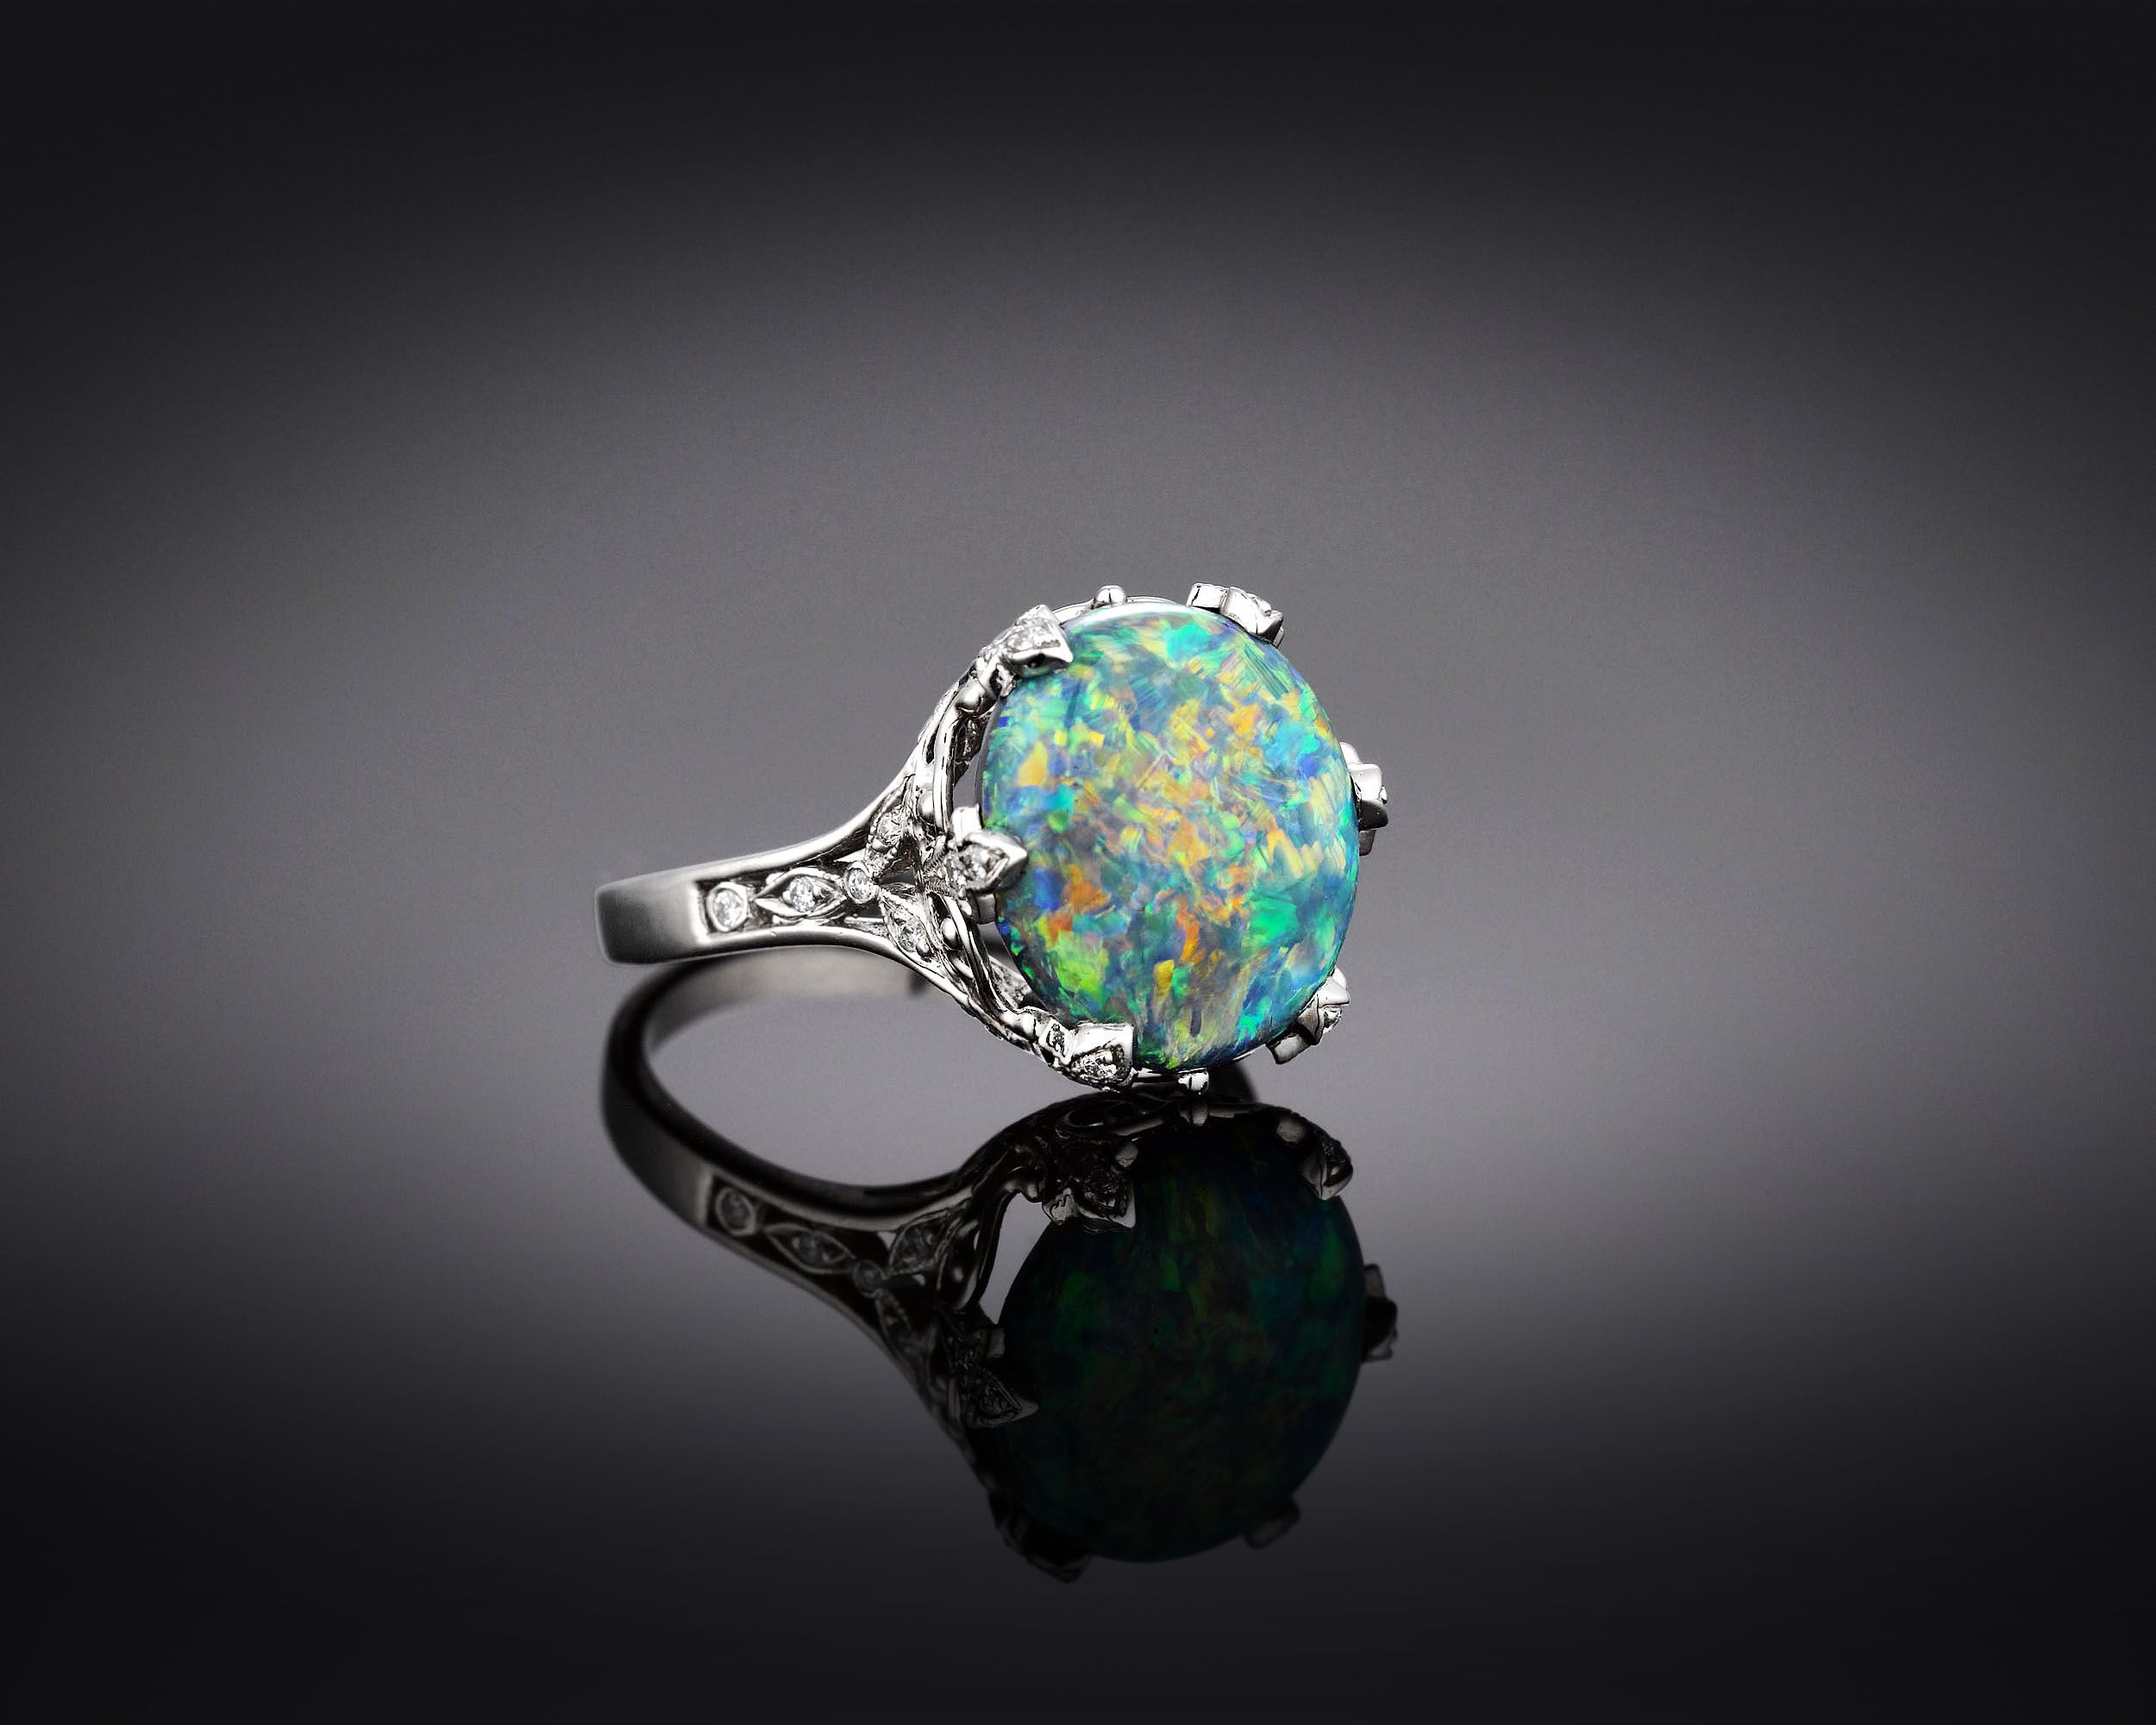 Estate Jewelry, Tiffany & Co., Black Opal Ring ~ M.S. Rau Antiques. A majestic 5.54-carat black opal glistens with a veritable rainbow of color in this Tiffany & Co. ring. This highly desirable gem is set in a fine foliate platinum mounting amongst .25 carats of diamond accents. $34,500